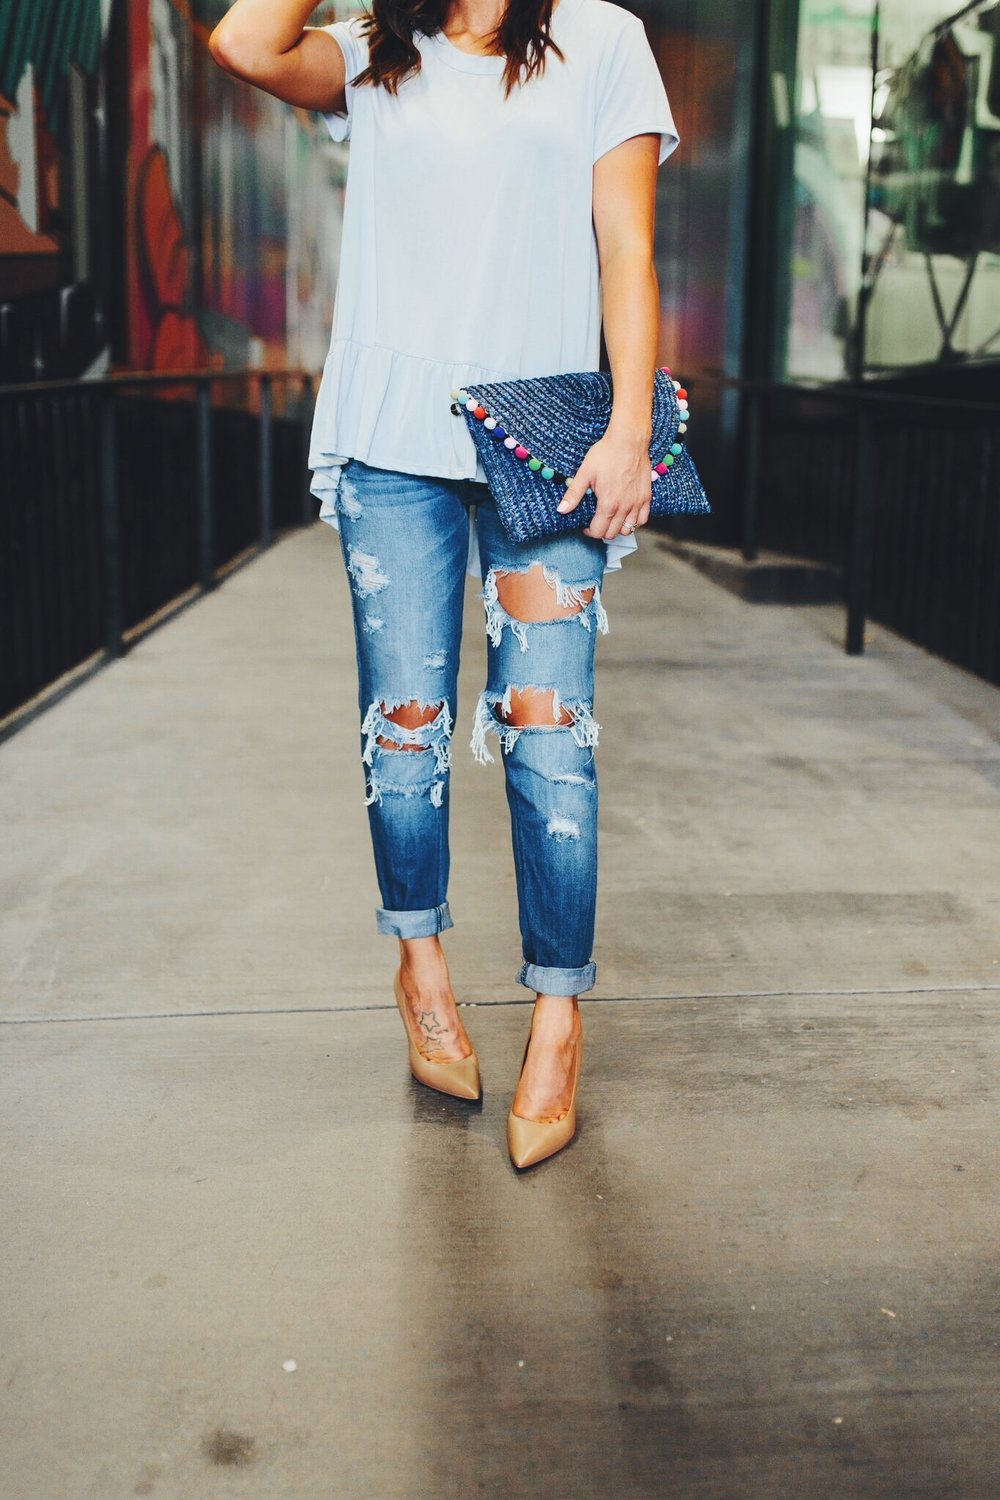 "<img src =""how-to-wear-boyfriend-jeans.jpg"" alt = ""waist-down-look-at-fashion-blogger-teddybearsandlipstick's-boyfriend-jeans-outfit-styled-with-caramel-colored-sam-edelman-hazel-pumps-and-a-peplum-top"">"